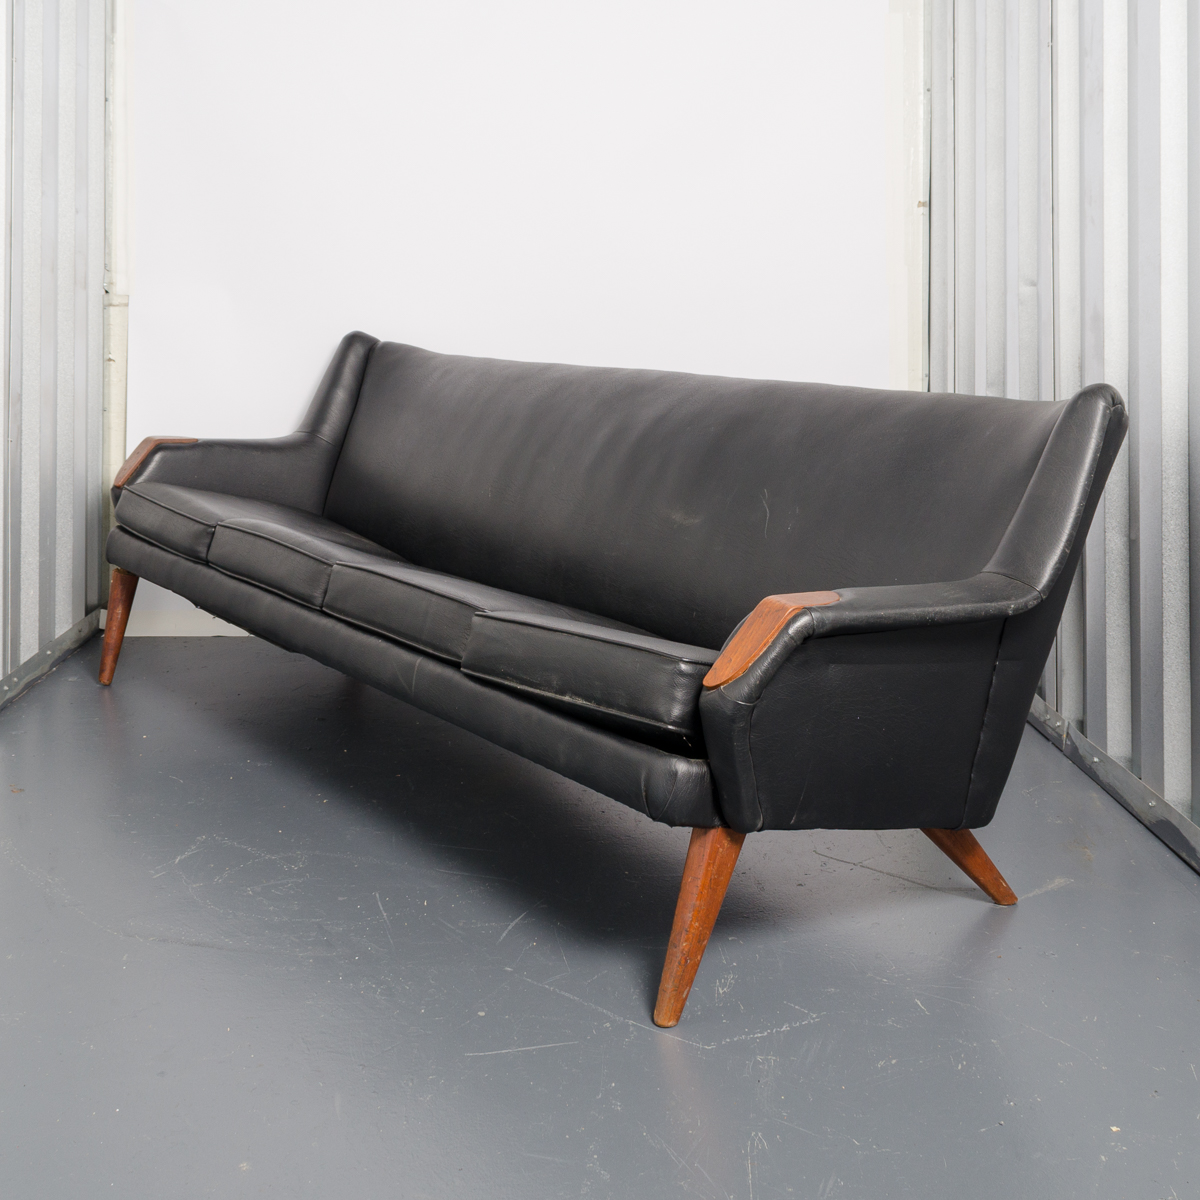 vintage mid century modern couch. Vintage Mid Century Modern Black Leather Sofa Couch _